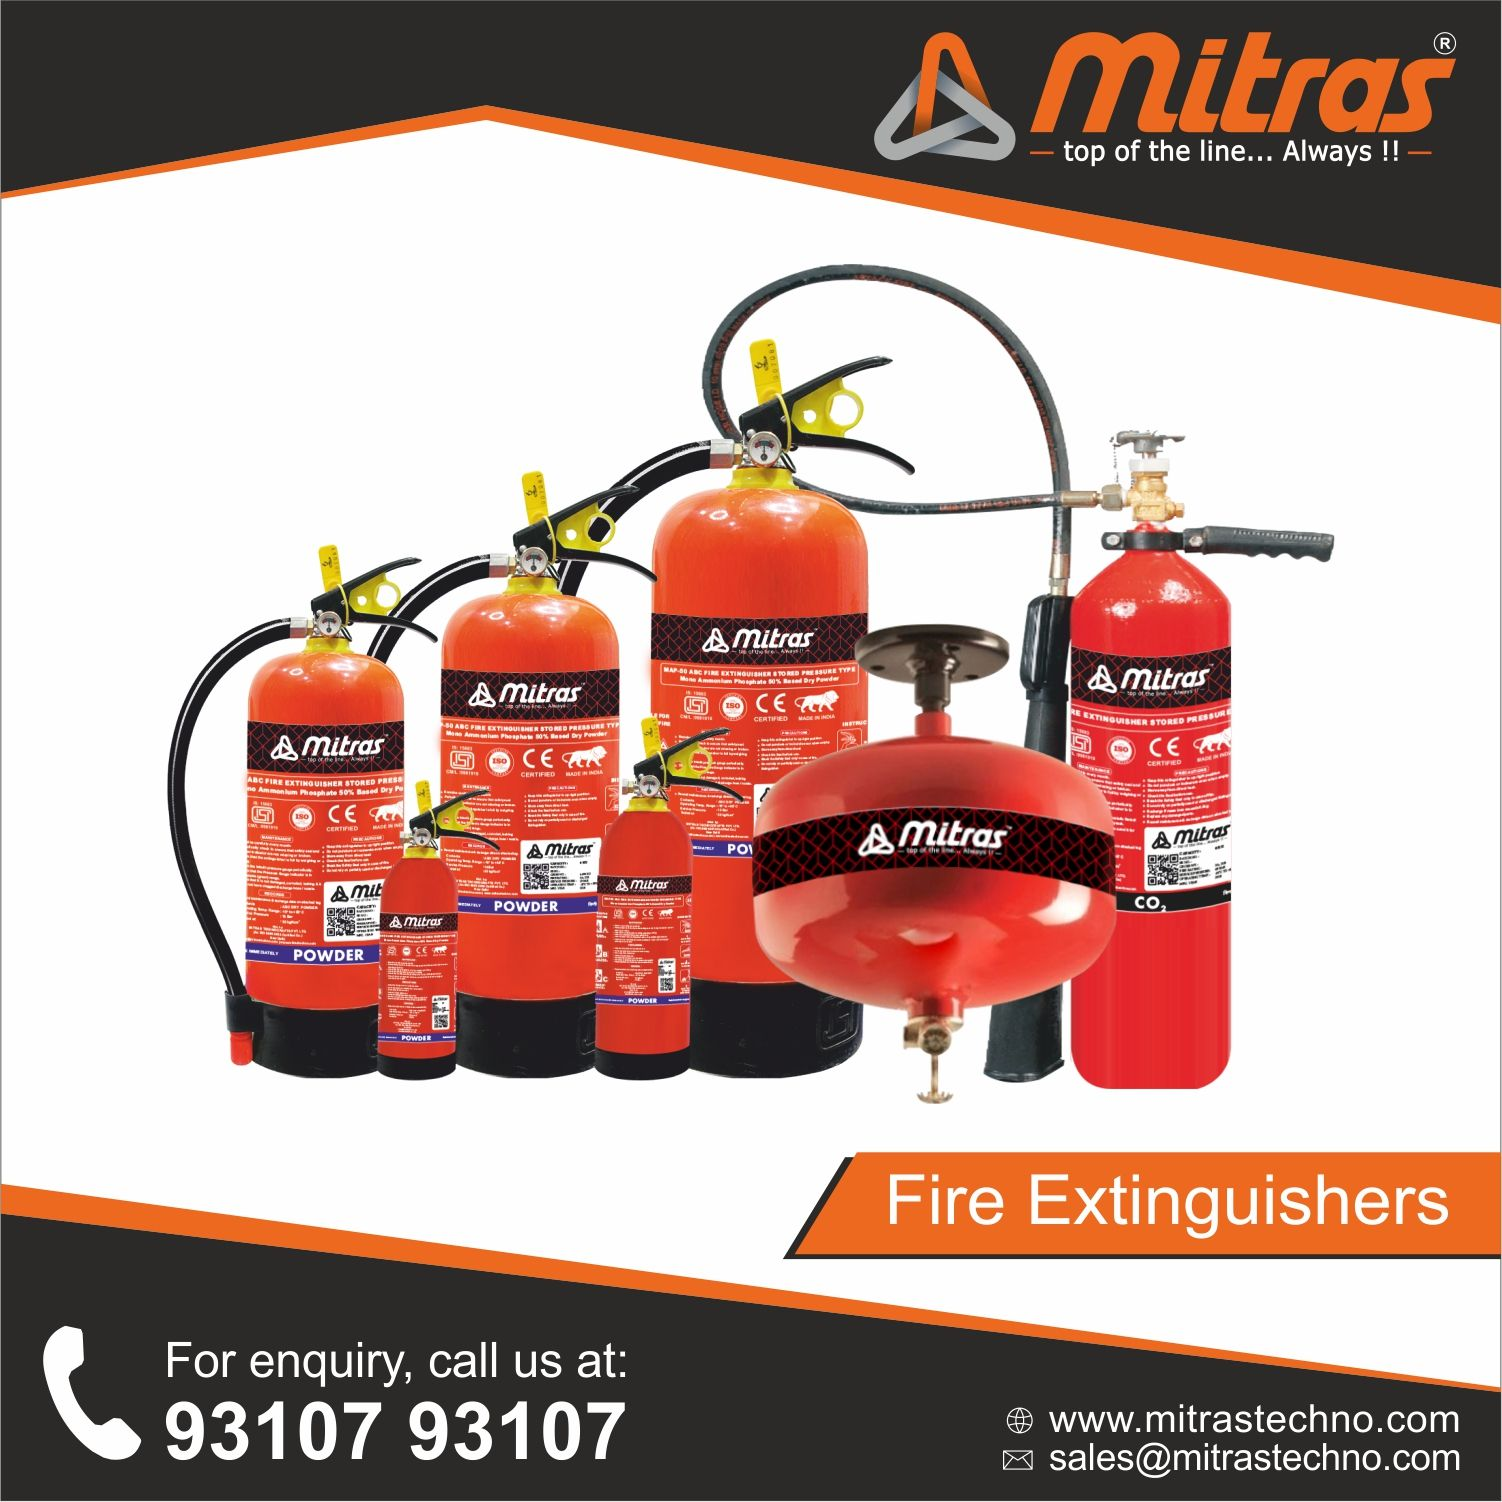 Mitras Technocrafts manufacture several types of fire